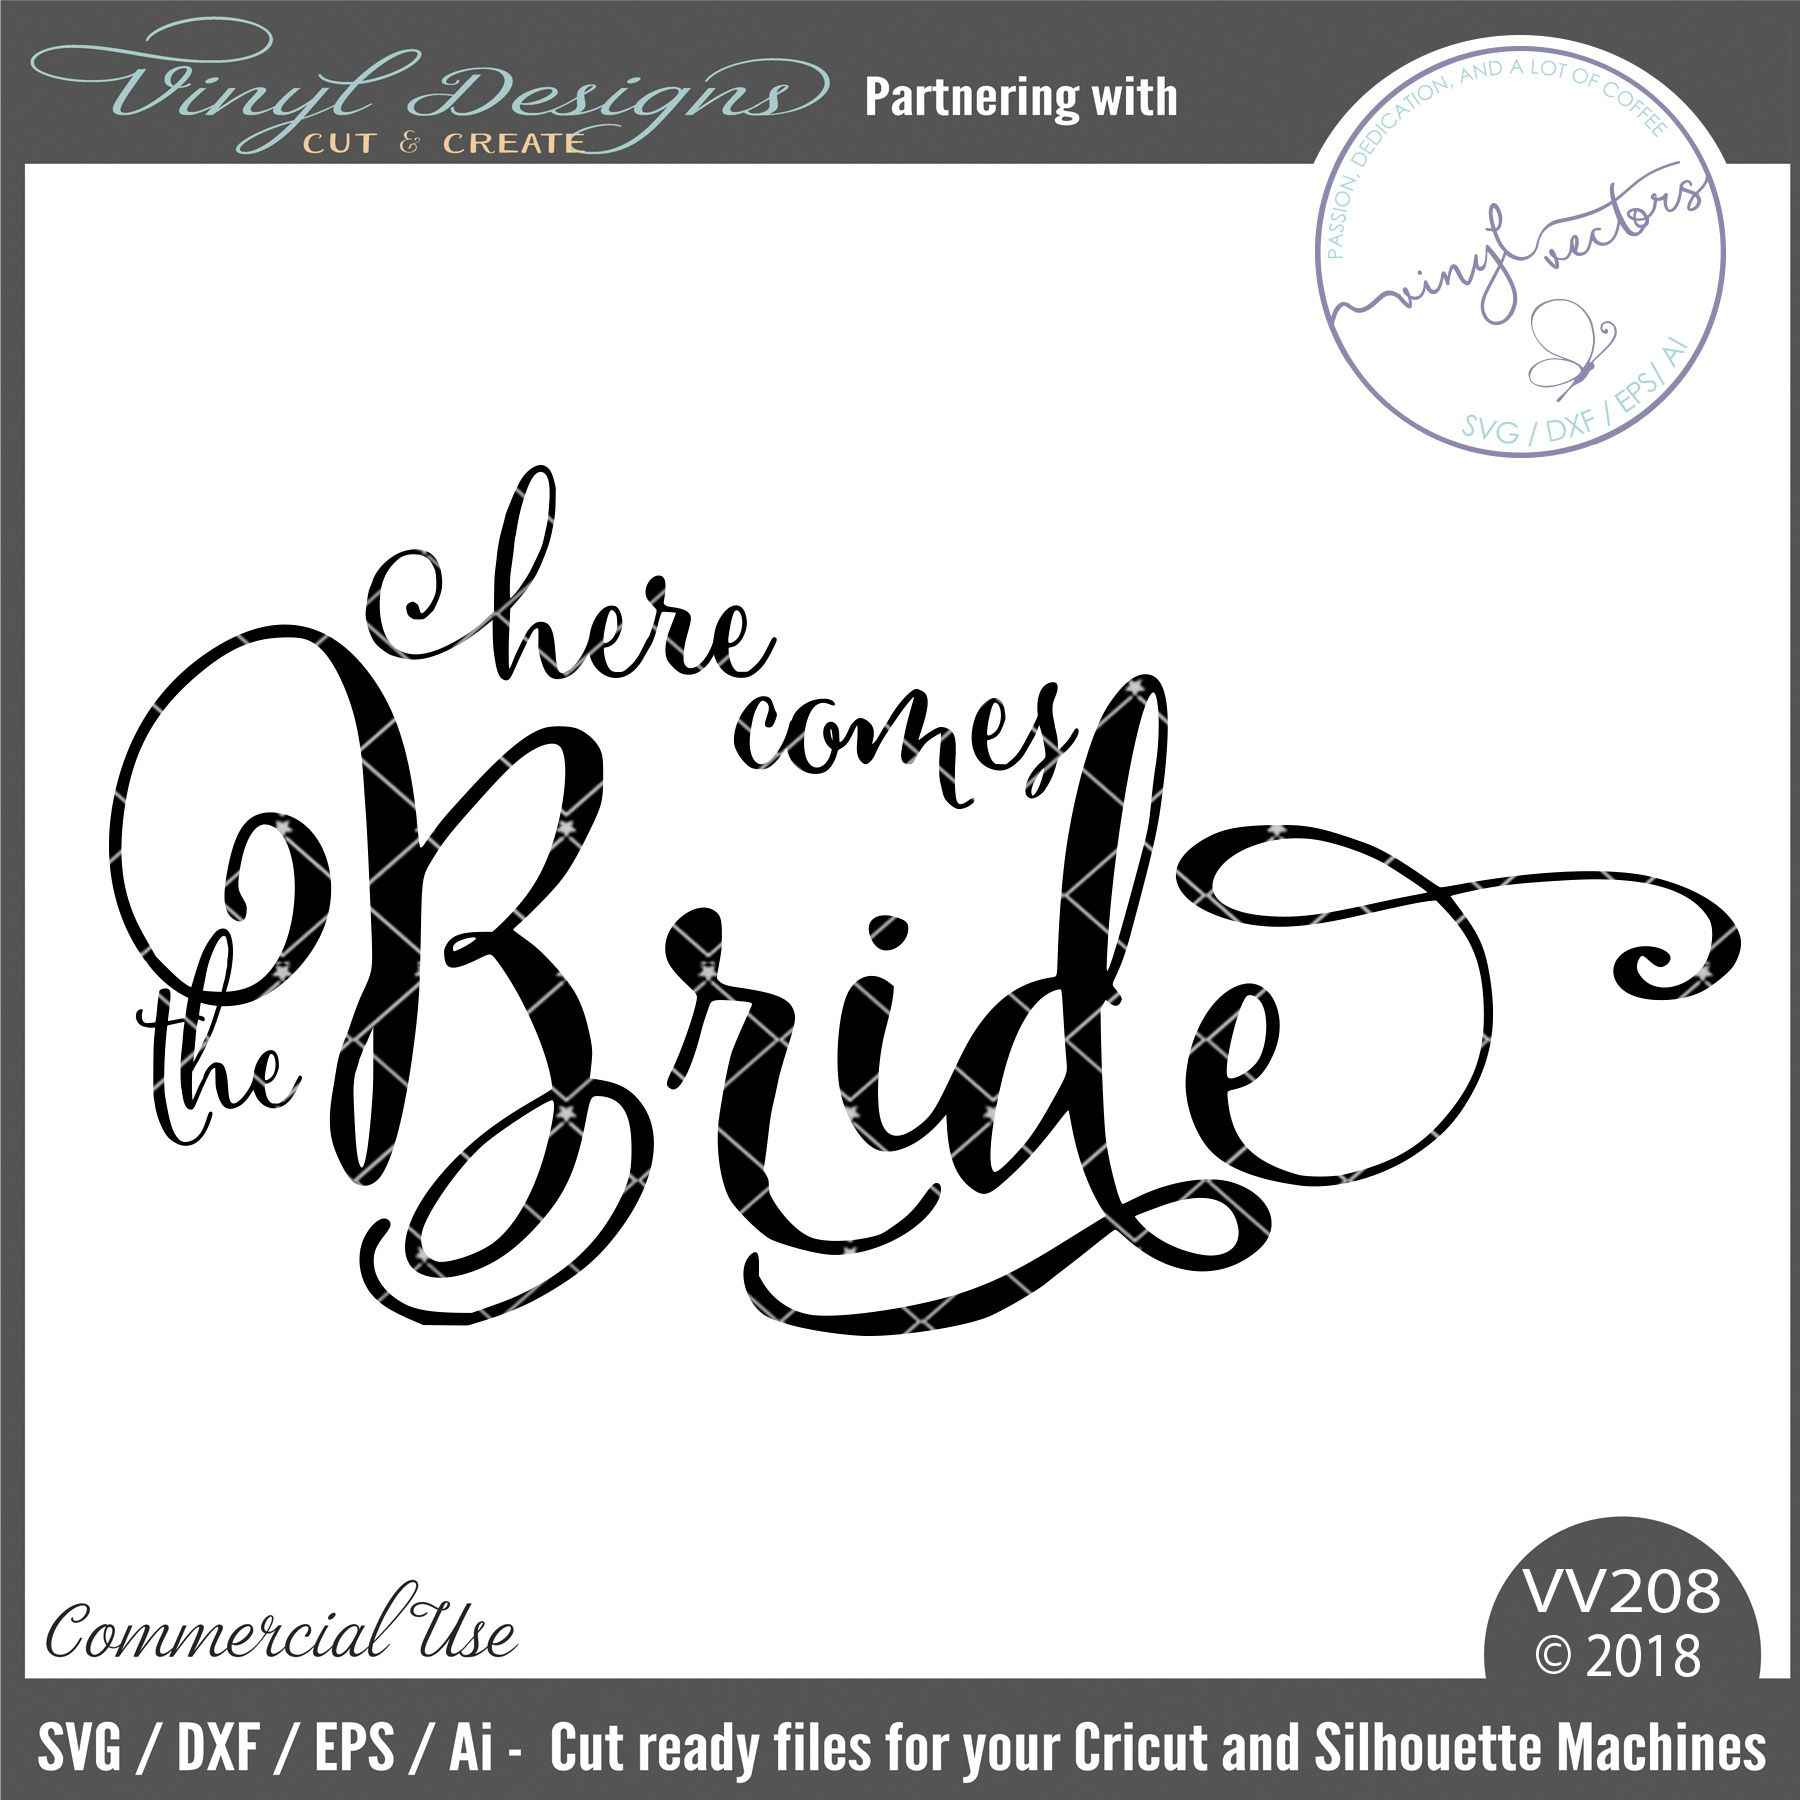 Vv208 Here Comes The Bride Sold By Vinyl And Vectorssmall Business Commercial Useavailable In Svg Dxf Eps And Ai Here Comes The Bride Vinyl Designs Cricut